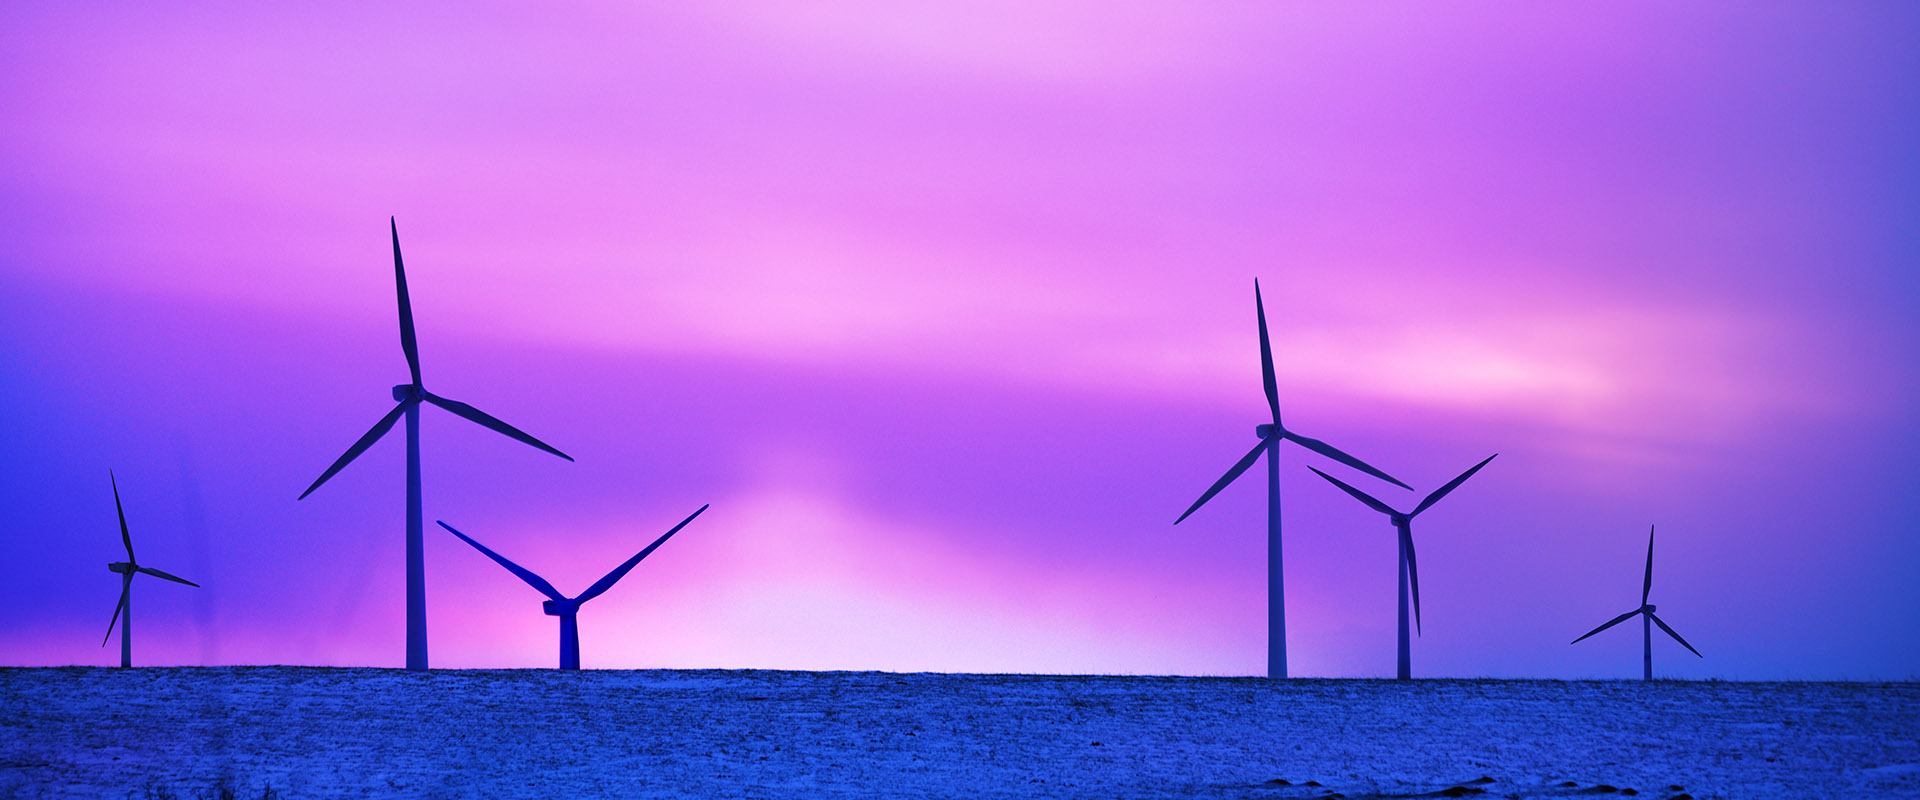 purple offshore windfarm